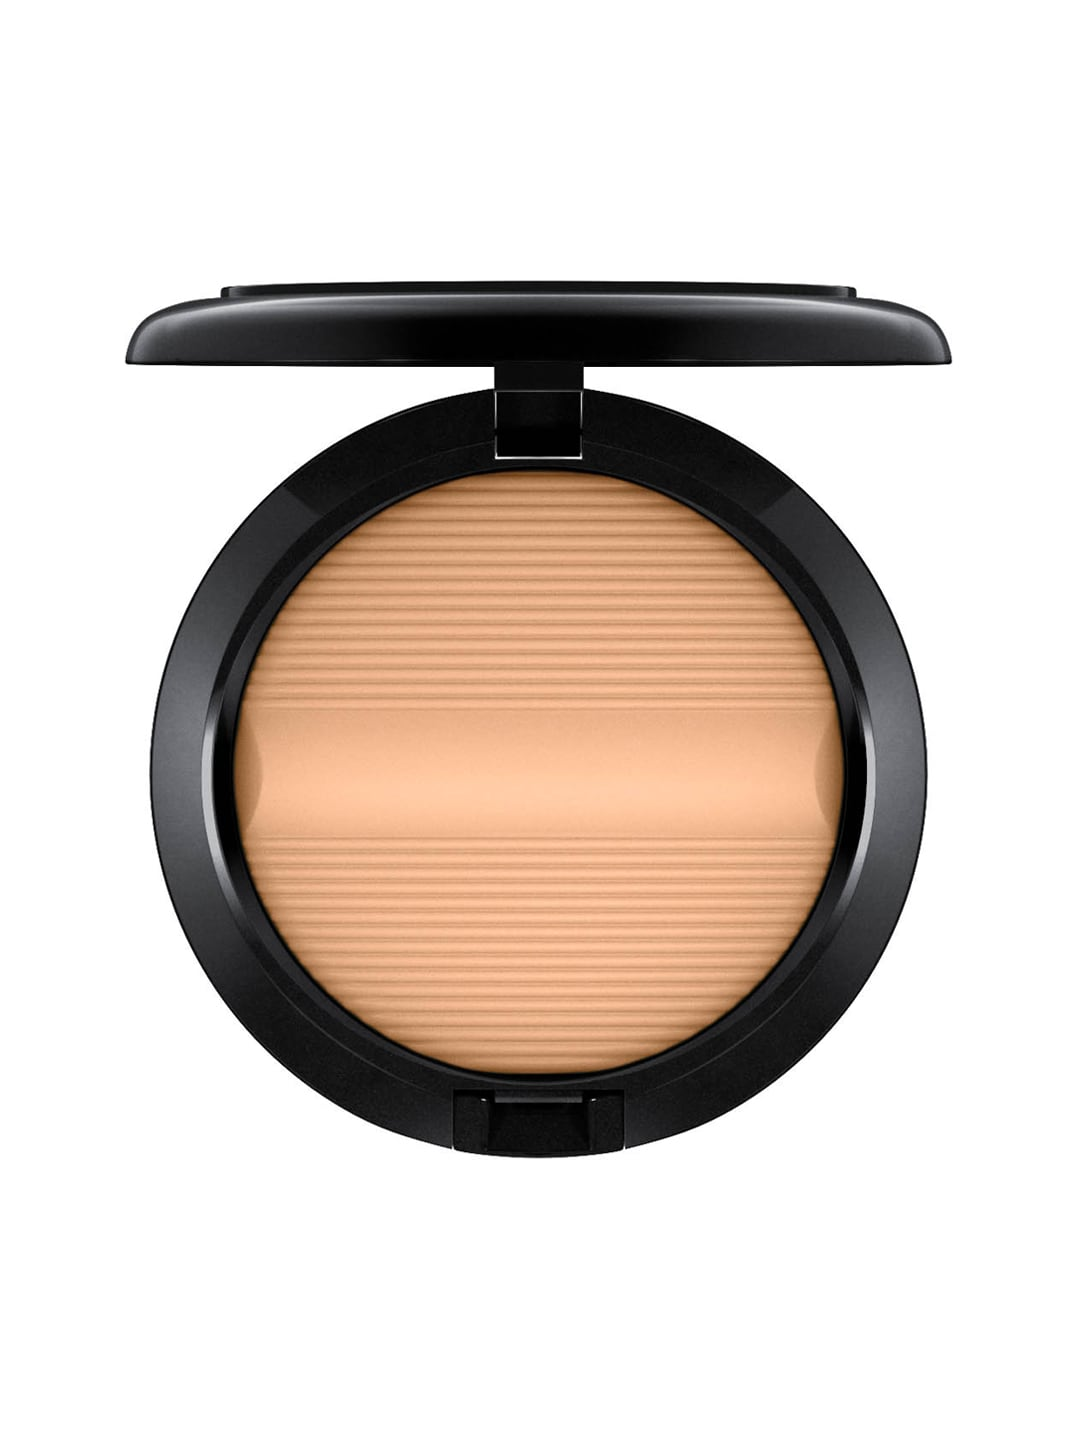 M.A.C Sculpt Delicates Fruity Juicy Studio  Bronzing Powder image